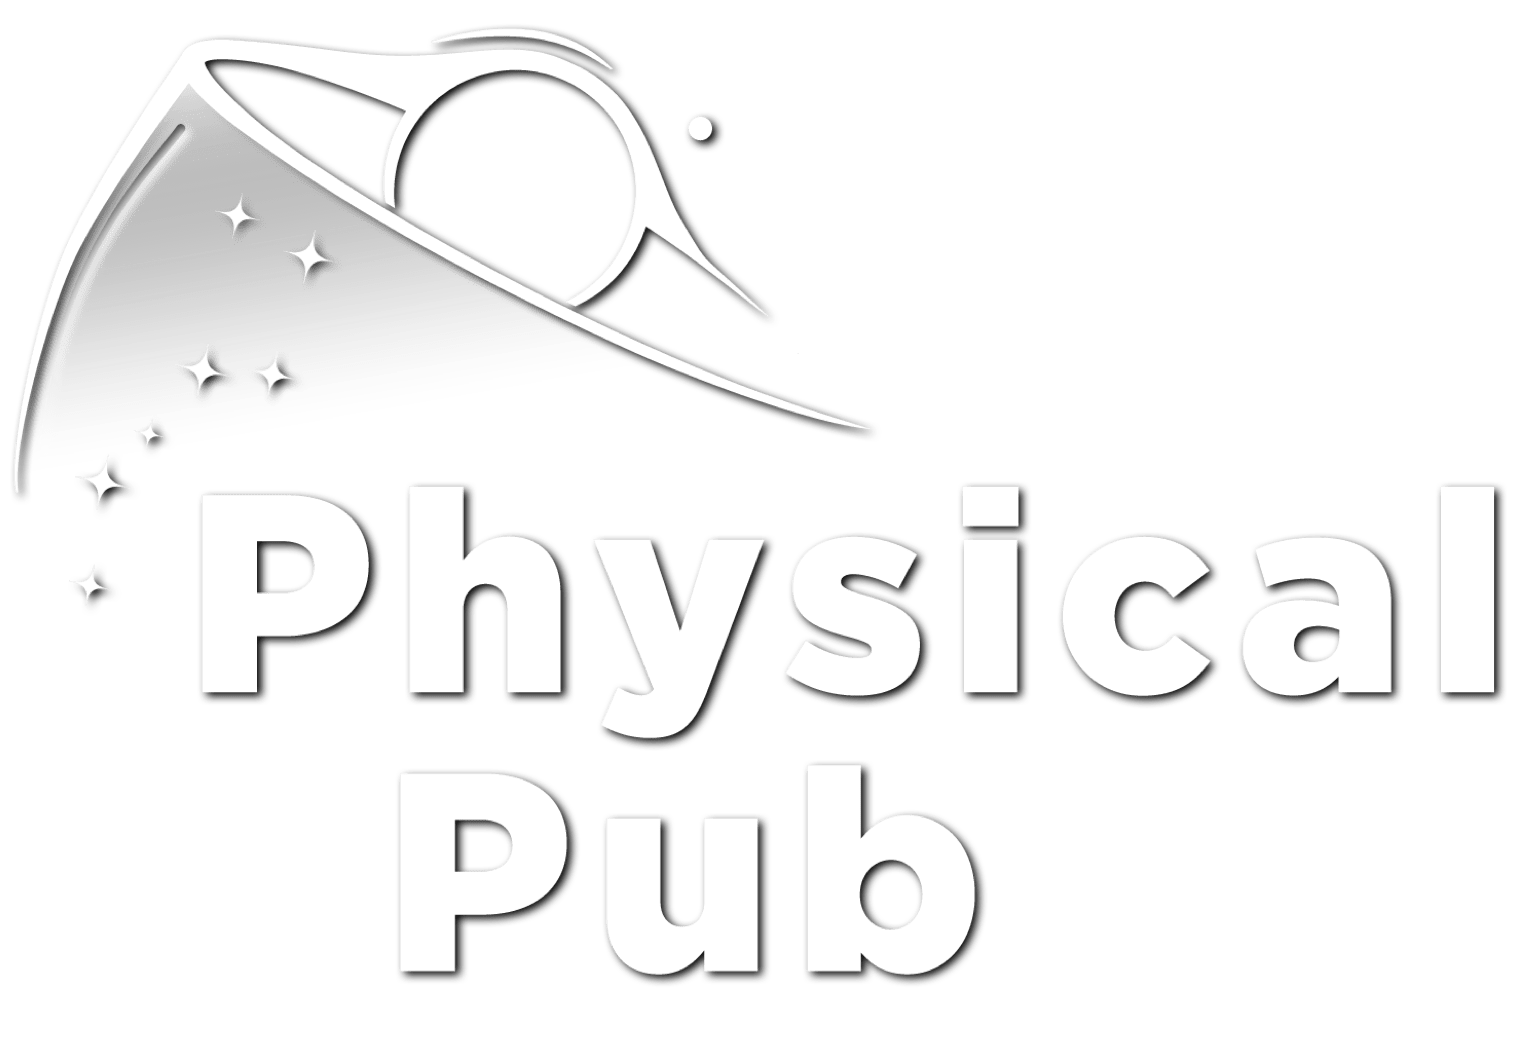 Physicalpub